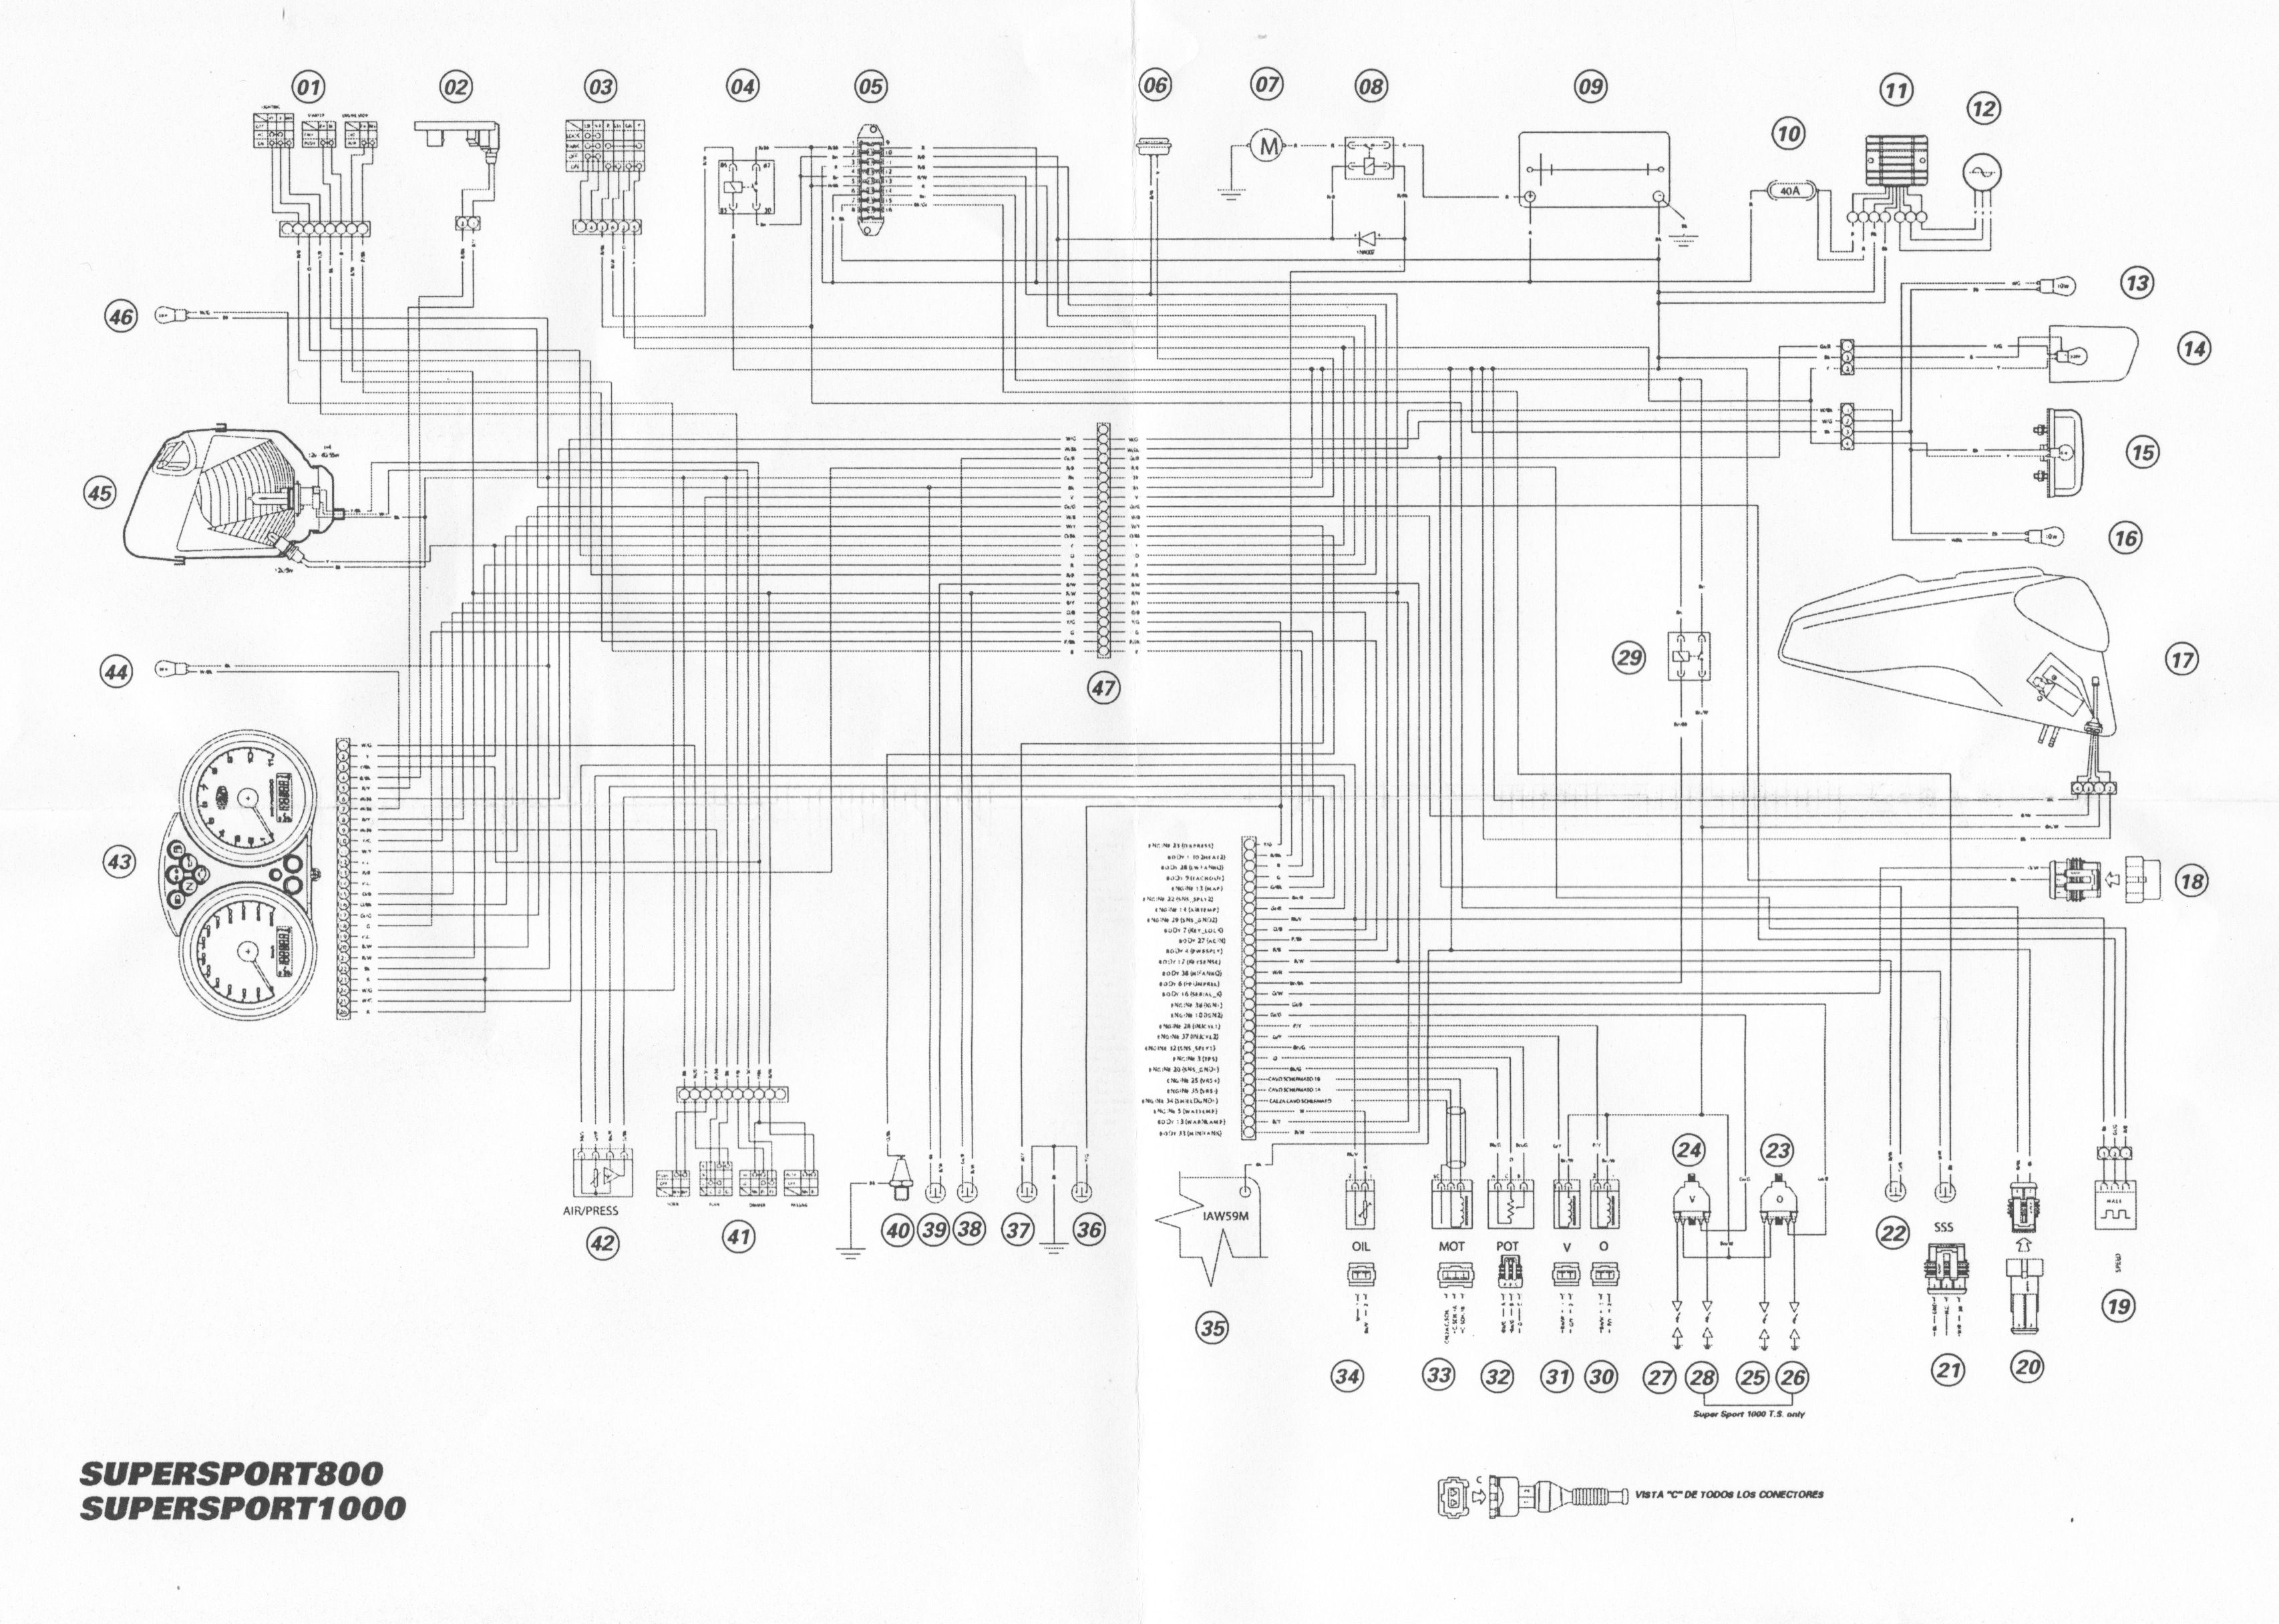 ducati 749 wiring diagram residential electrical symbols u2022 rh gabrielfilms co uk 2004 ducati 749 wiring diagram 2004 ducati 749 wiring diagram